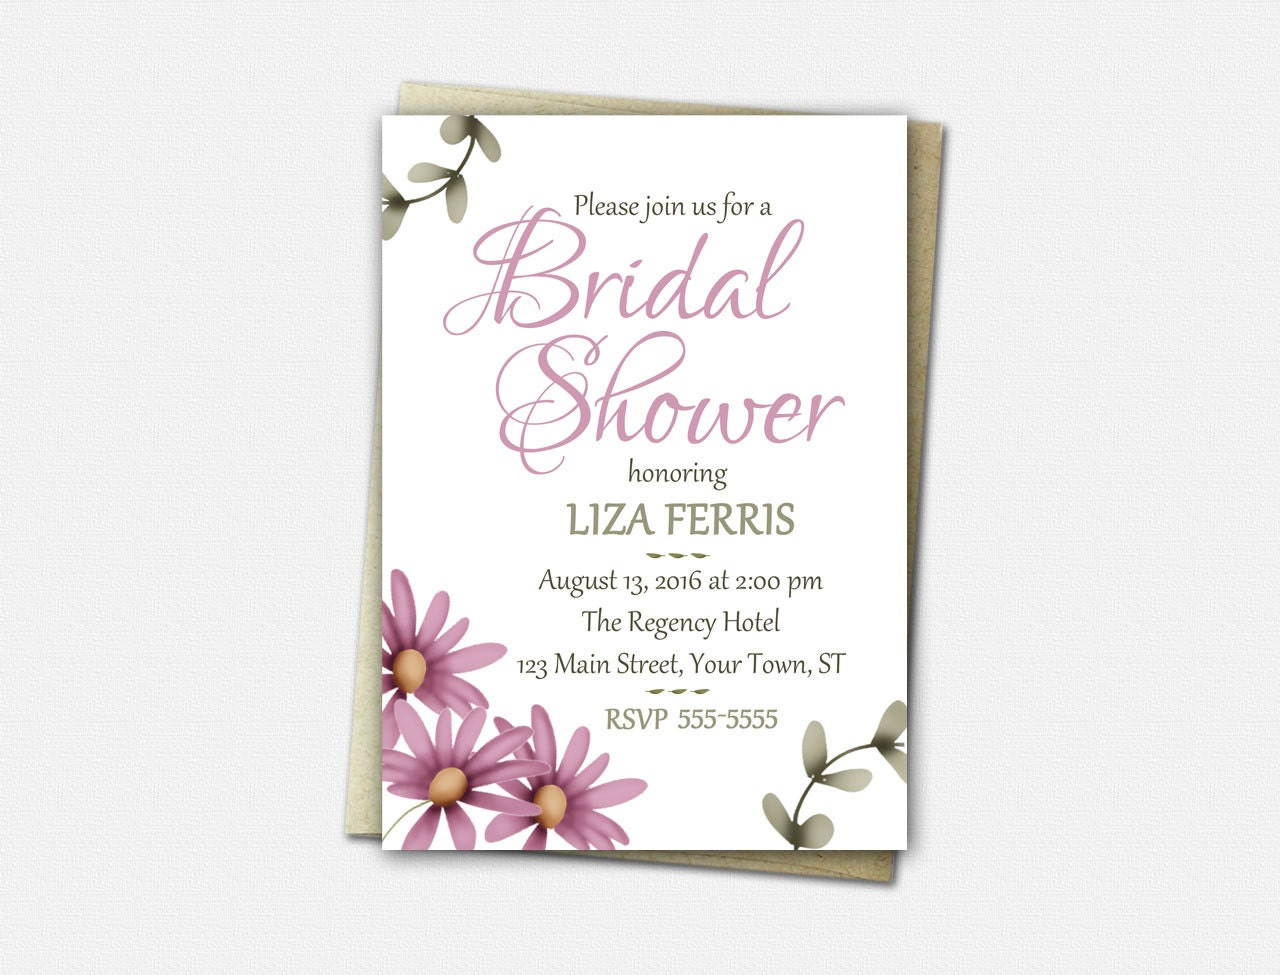 Bridal shower invitations rustic bridal shower invitation for Invitations for wedding shower